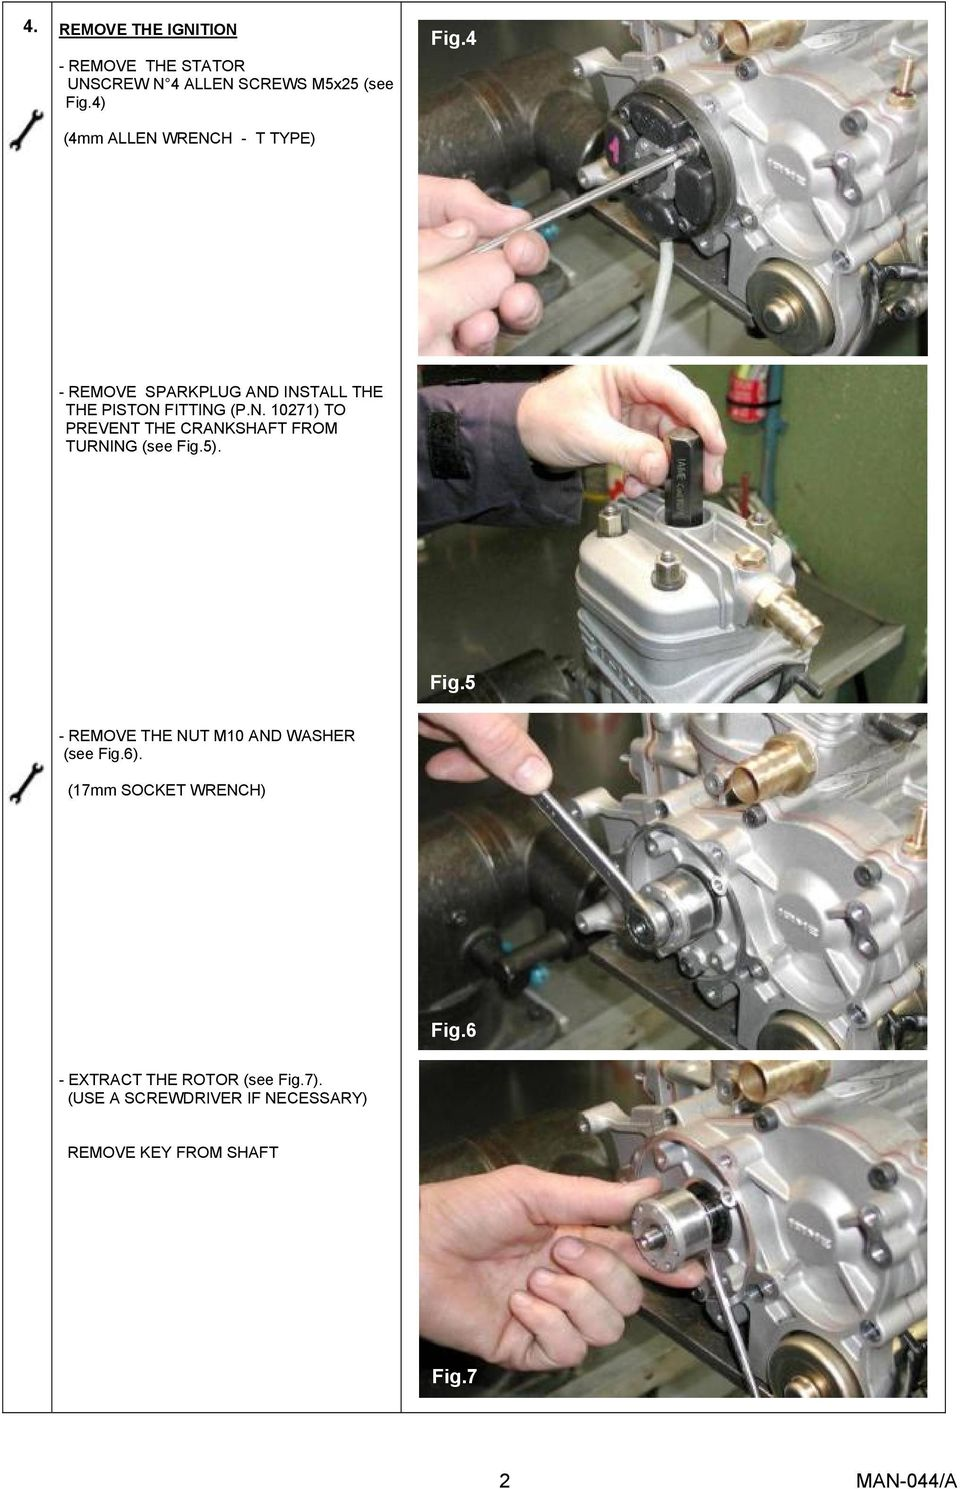 5). Fig.5 - REMOVE THE NUT M10 AND WASHER (see Fig.6). (17mm SOCKET WRENCH) Fig.